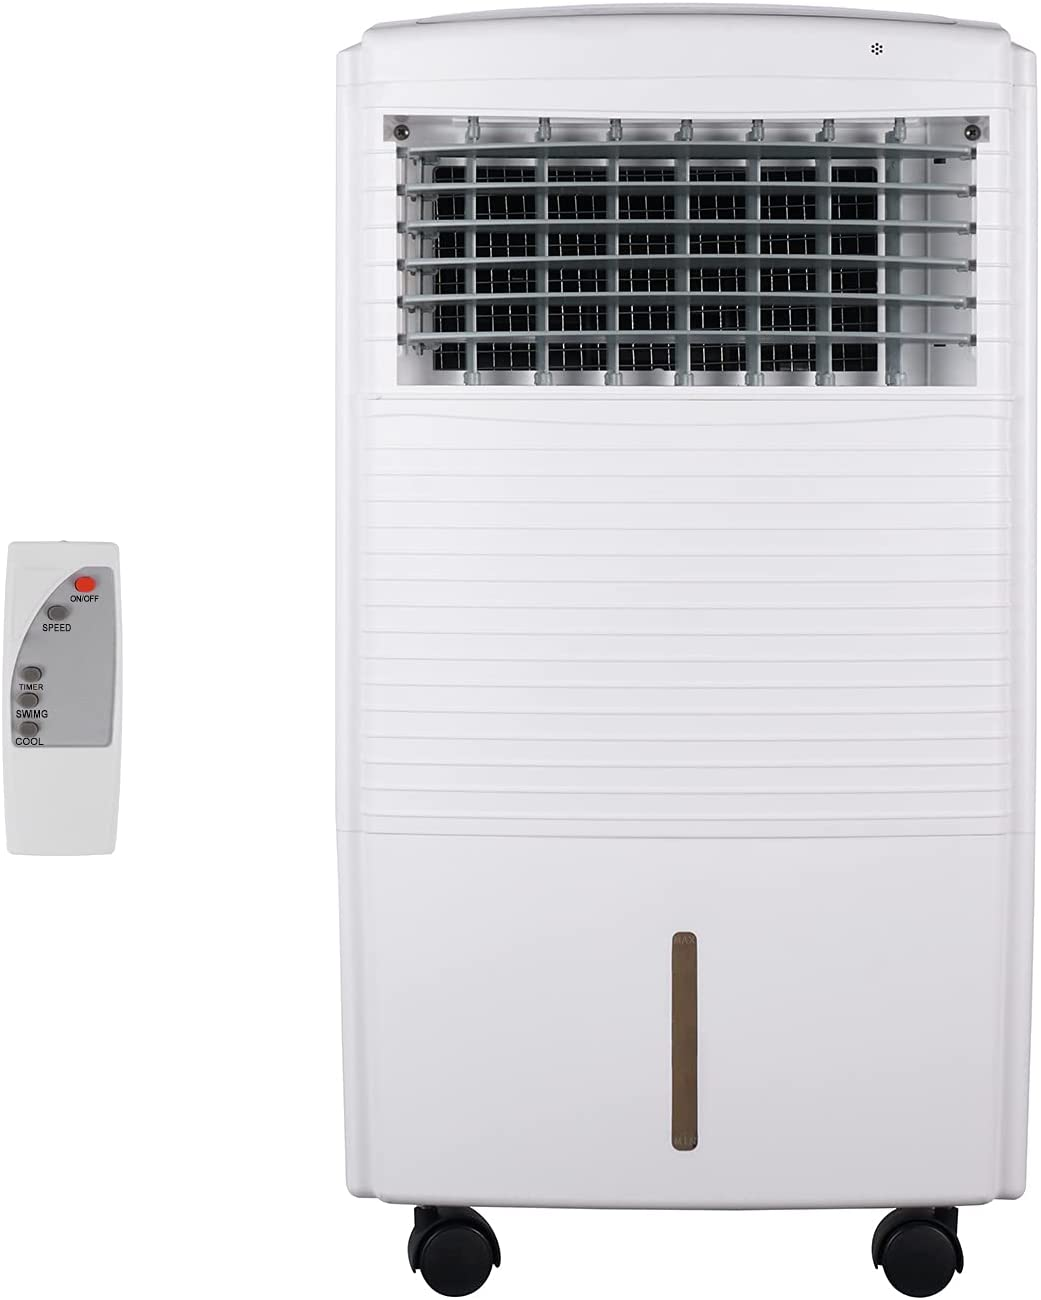 Evaporative Air Cooling Fan Inexpensive 3-IN-1 for Cooler Portable Room Raleigh Mall